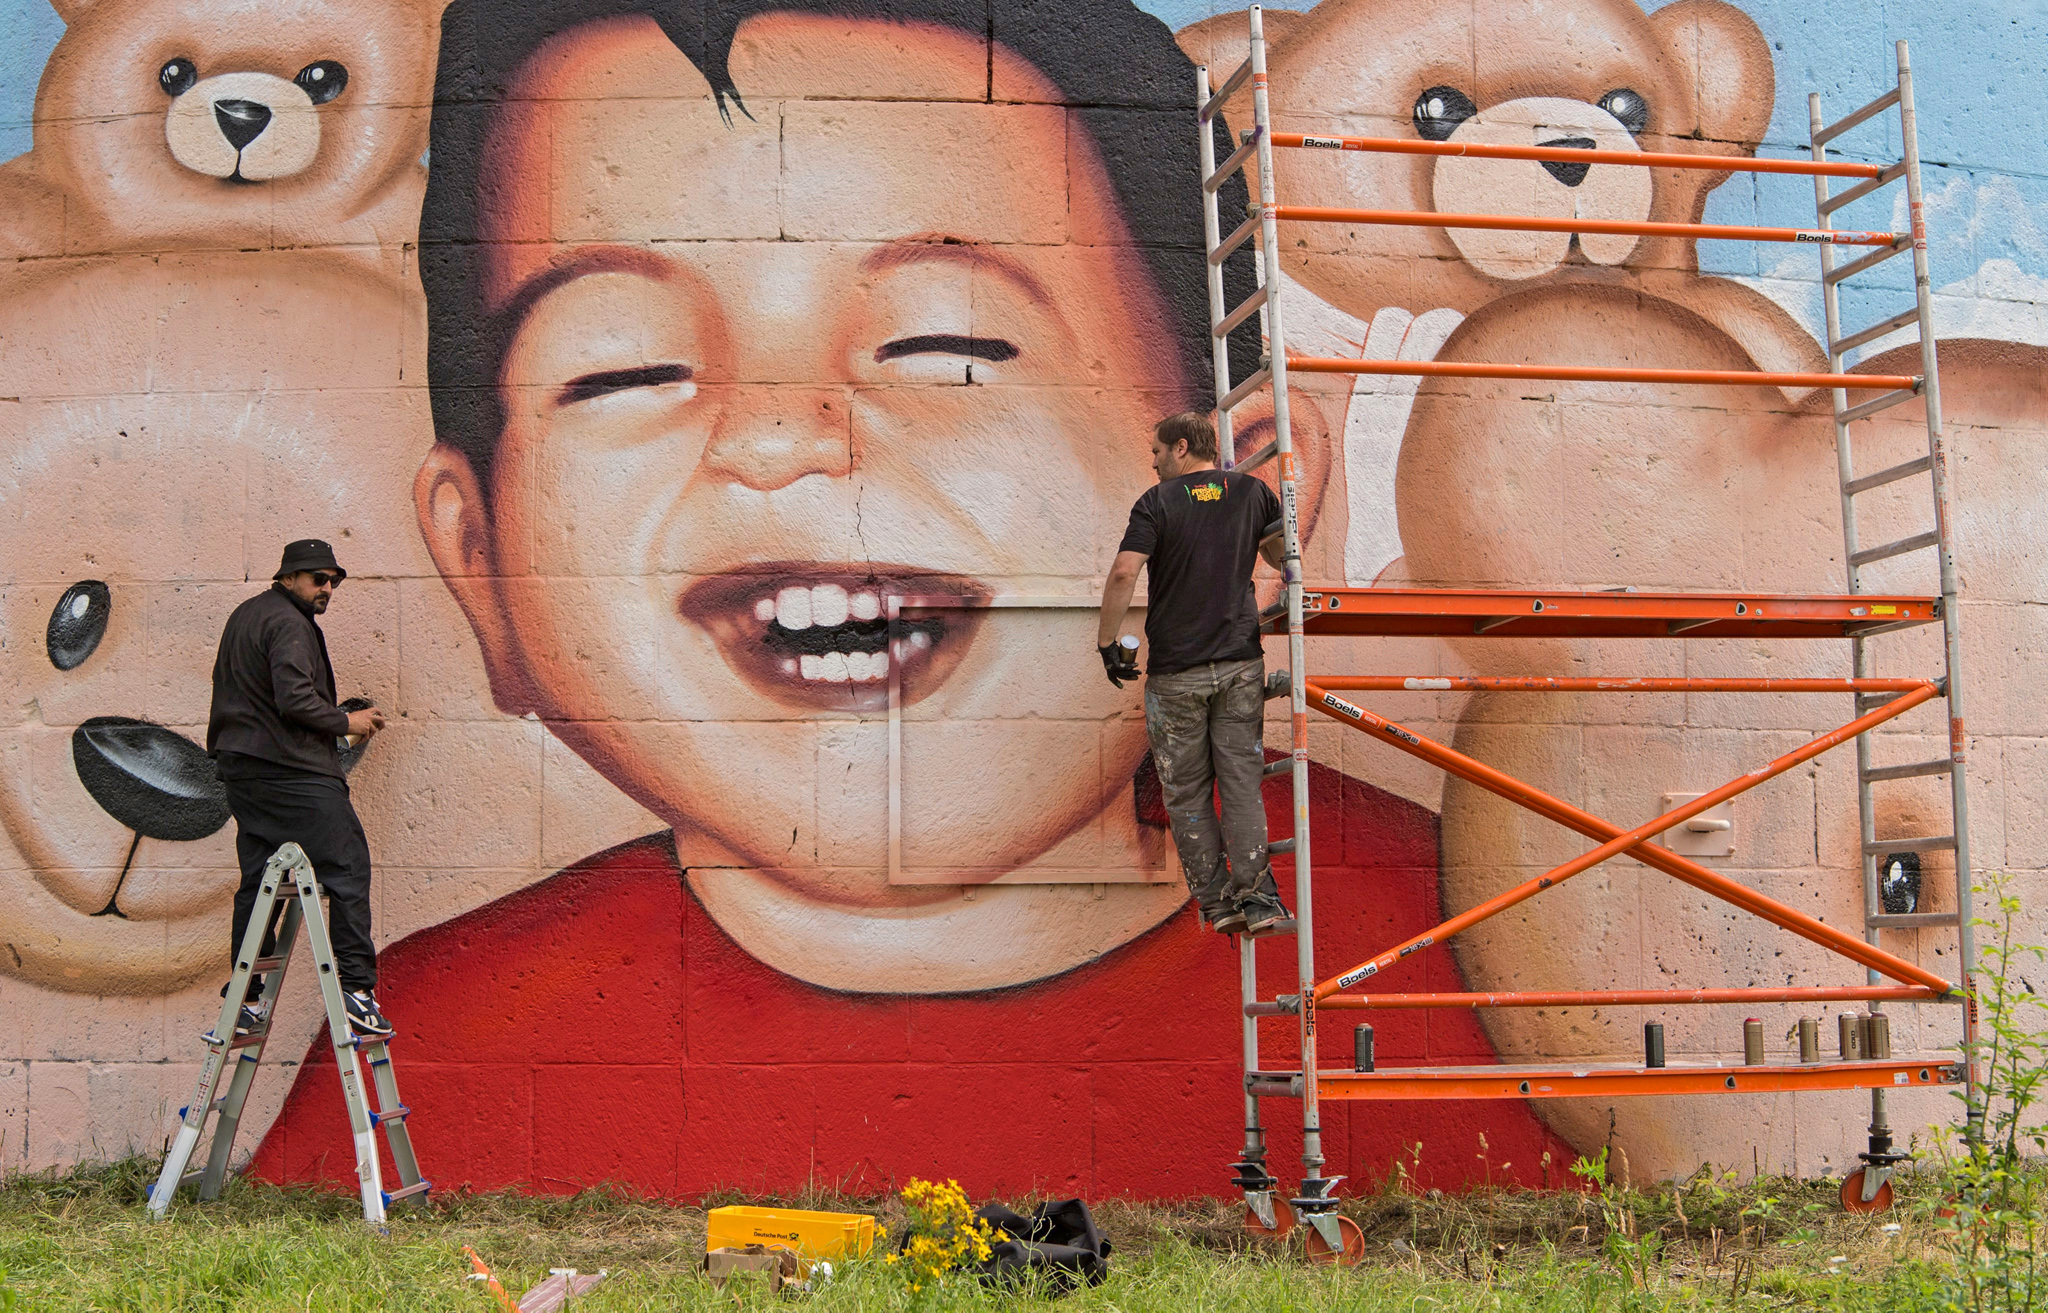 epa05406928 Graffiti artists Oguz Sen (L) and Justus Becker (R) make the finishing touches to a new mural of drowned refugee Aylan Kurdi, at Osthafen in Frankfurt Main, Germany, 04 July 2016. After the previous picture was daubed with slogans, the new image shows a living, laughing Aylan surrounded by stuffed toys.